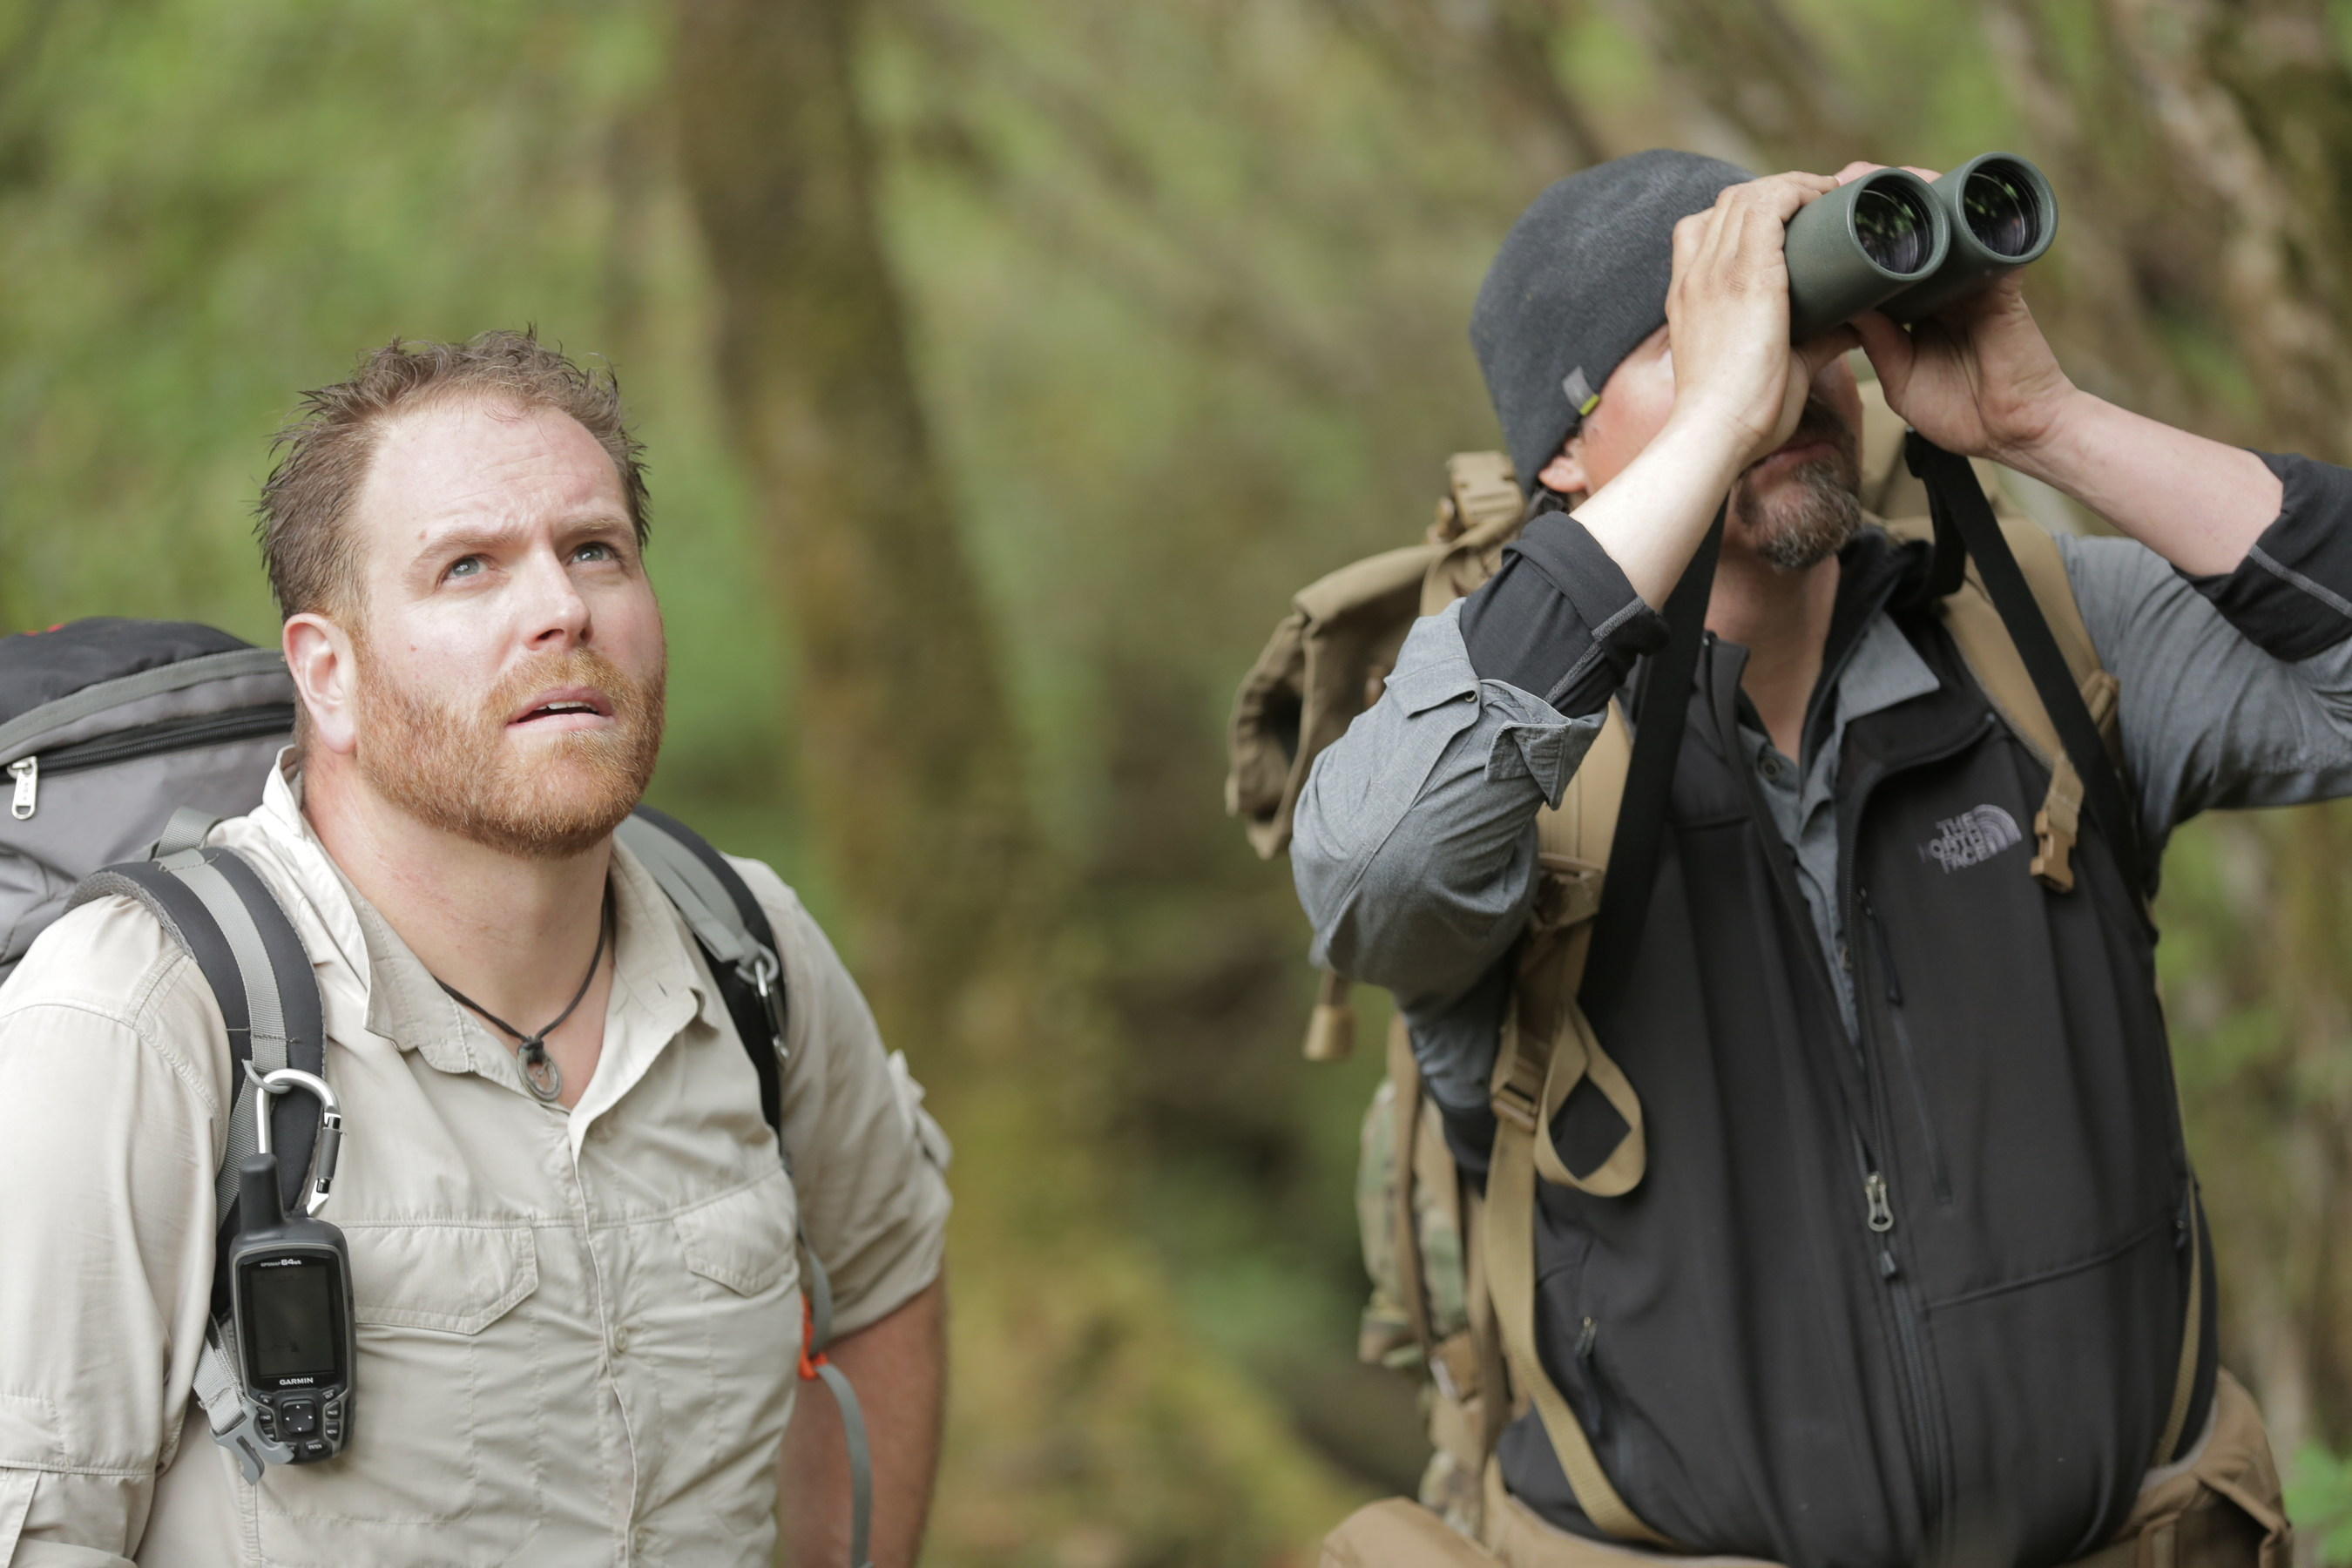 """Josh Gates hunts for the Yeti in an epic four-part investigation, """"Expedition Unknown: Hunt for the Yeti."""" Here, Gates searches for clues in the forests of Bhutan."""